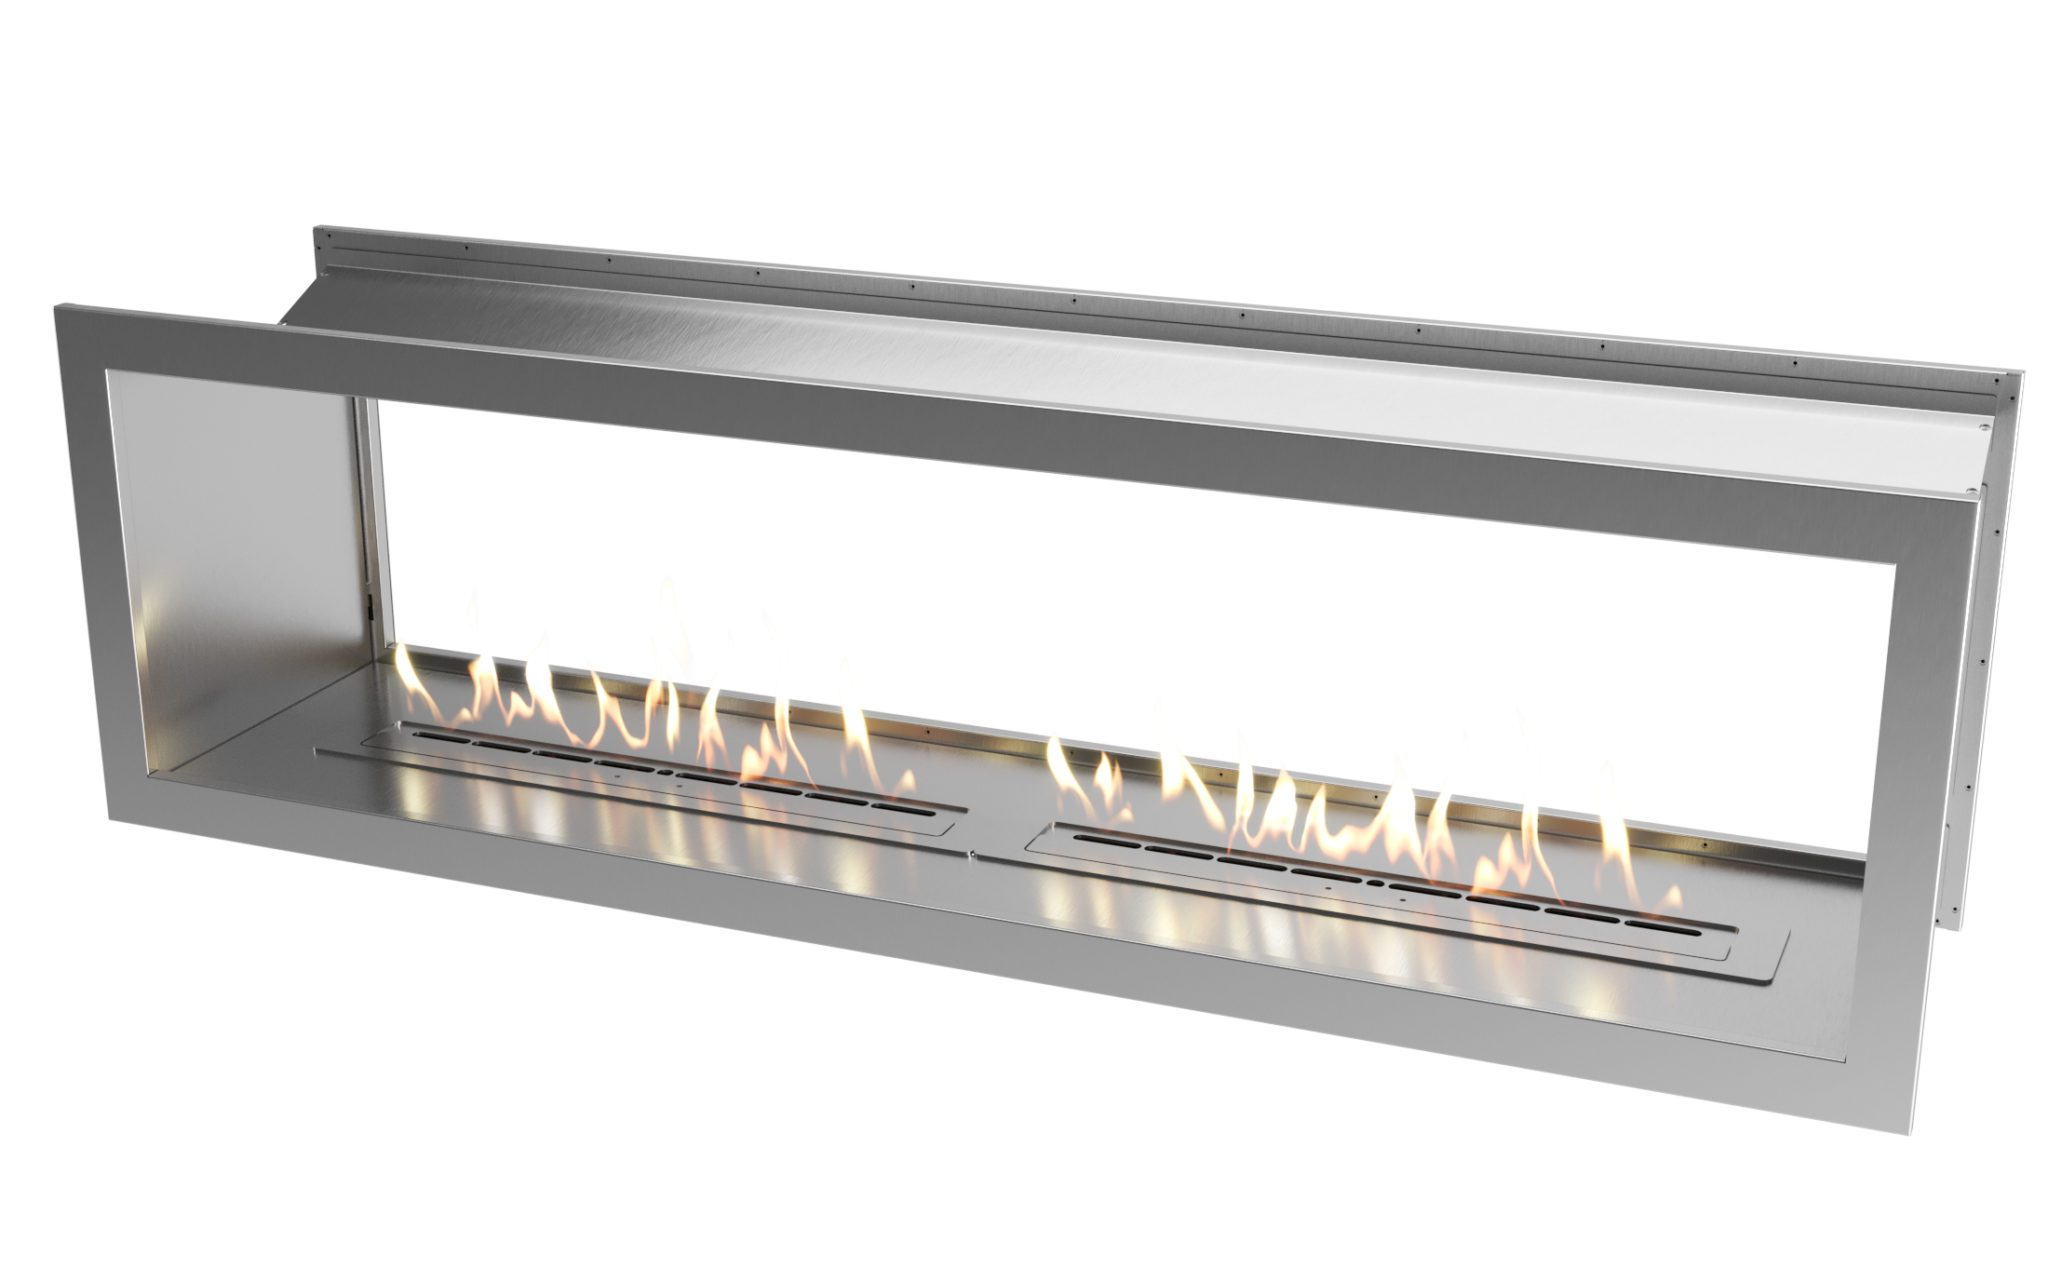 2000 Stainless steel double sided firebox with dual 800 slimline biofuel burners